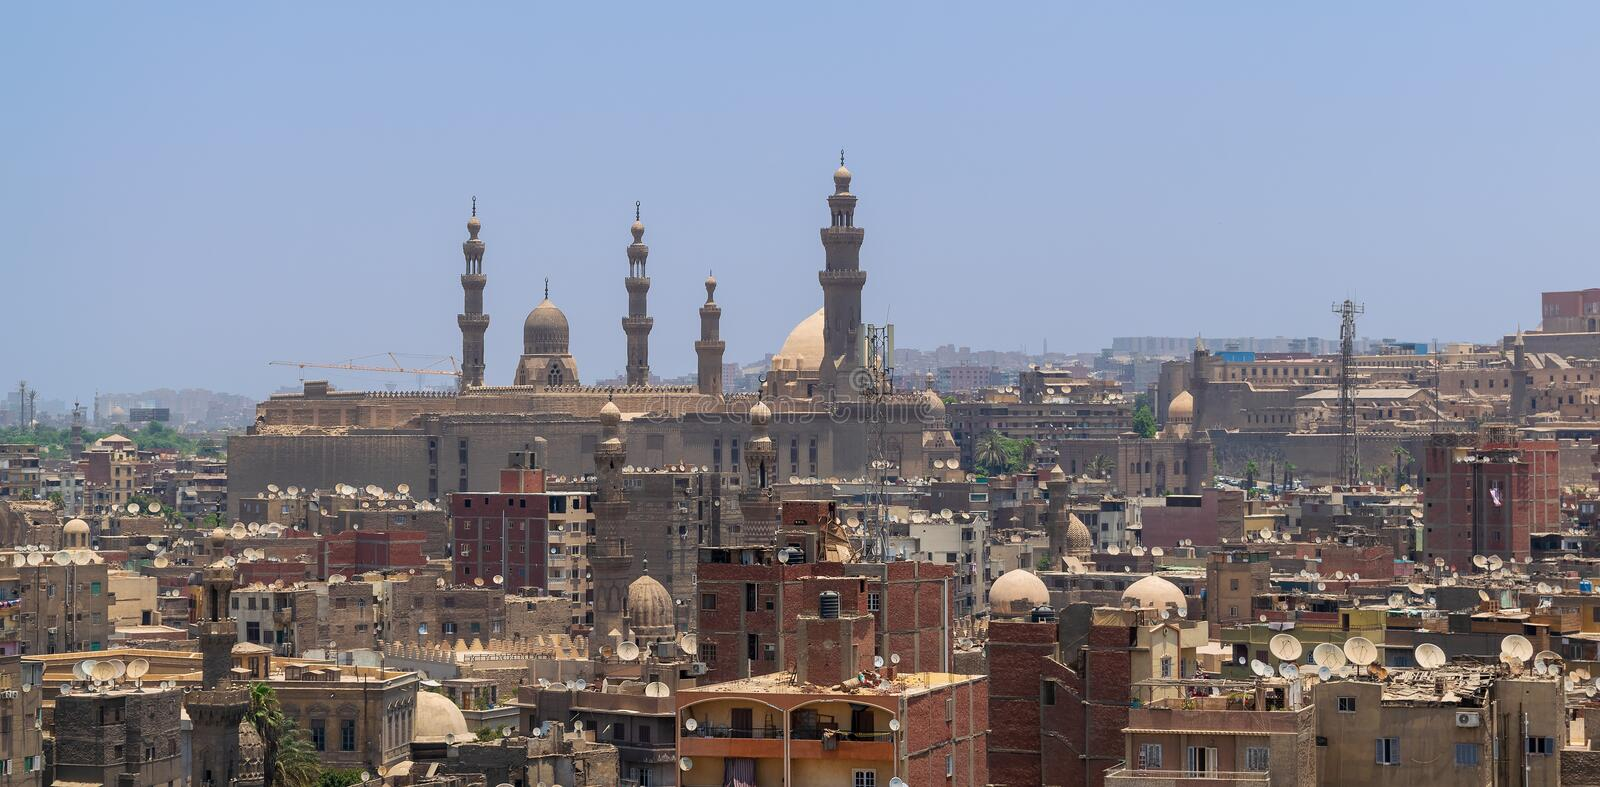 Aerial view of old Cairo, Egypt with grunge buildings and Sultan Hasan Mosque in far distance stock images